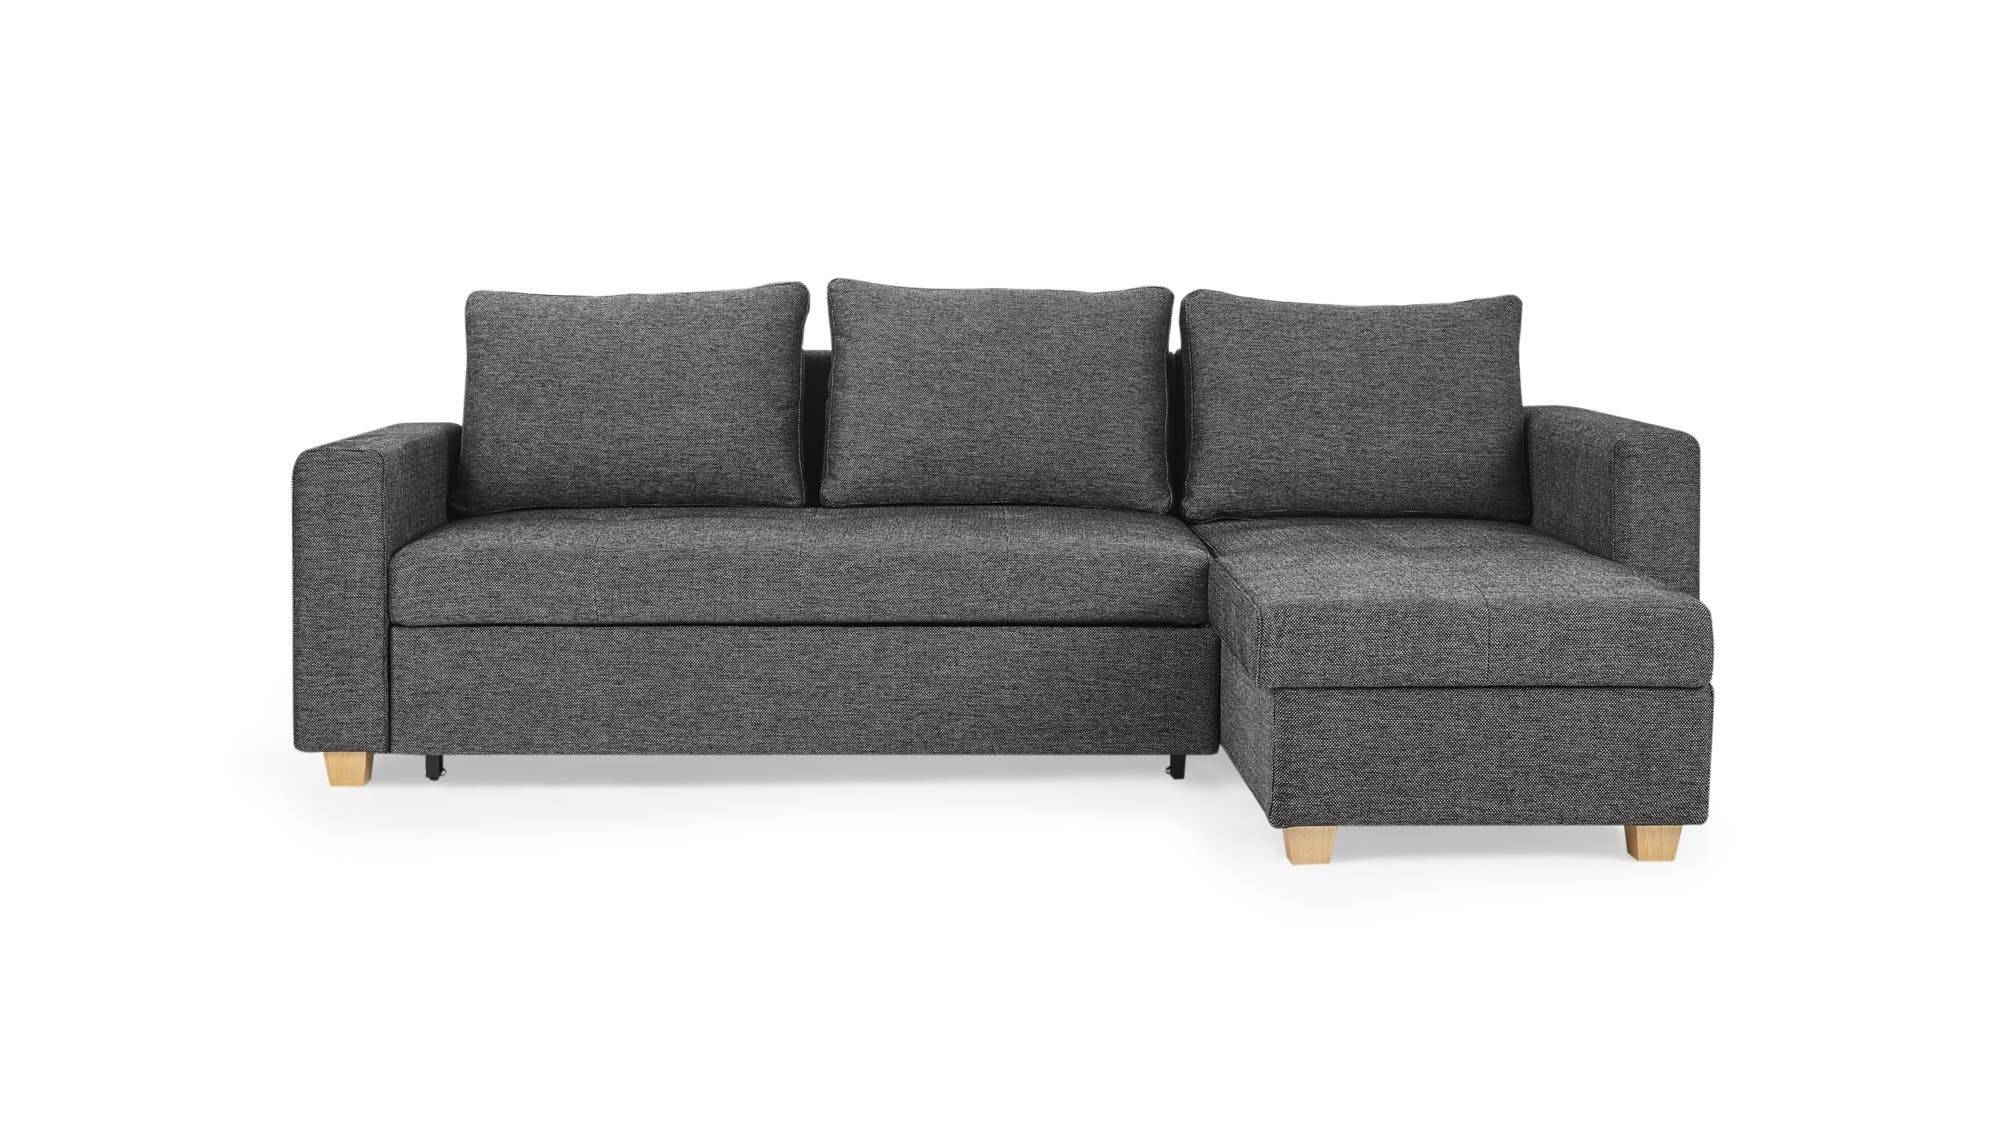 Chicago Storage - Corner Sofa Bed | Loungelovers in Chaise Sofa Beds With Storage (Image 1 of 15)